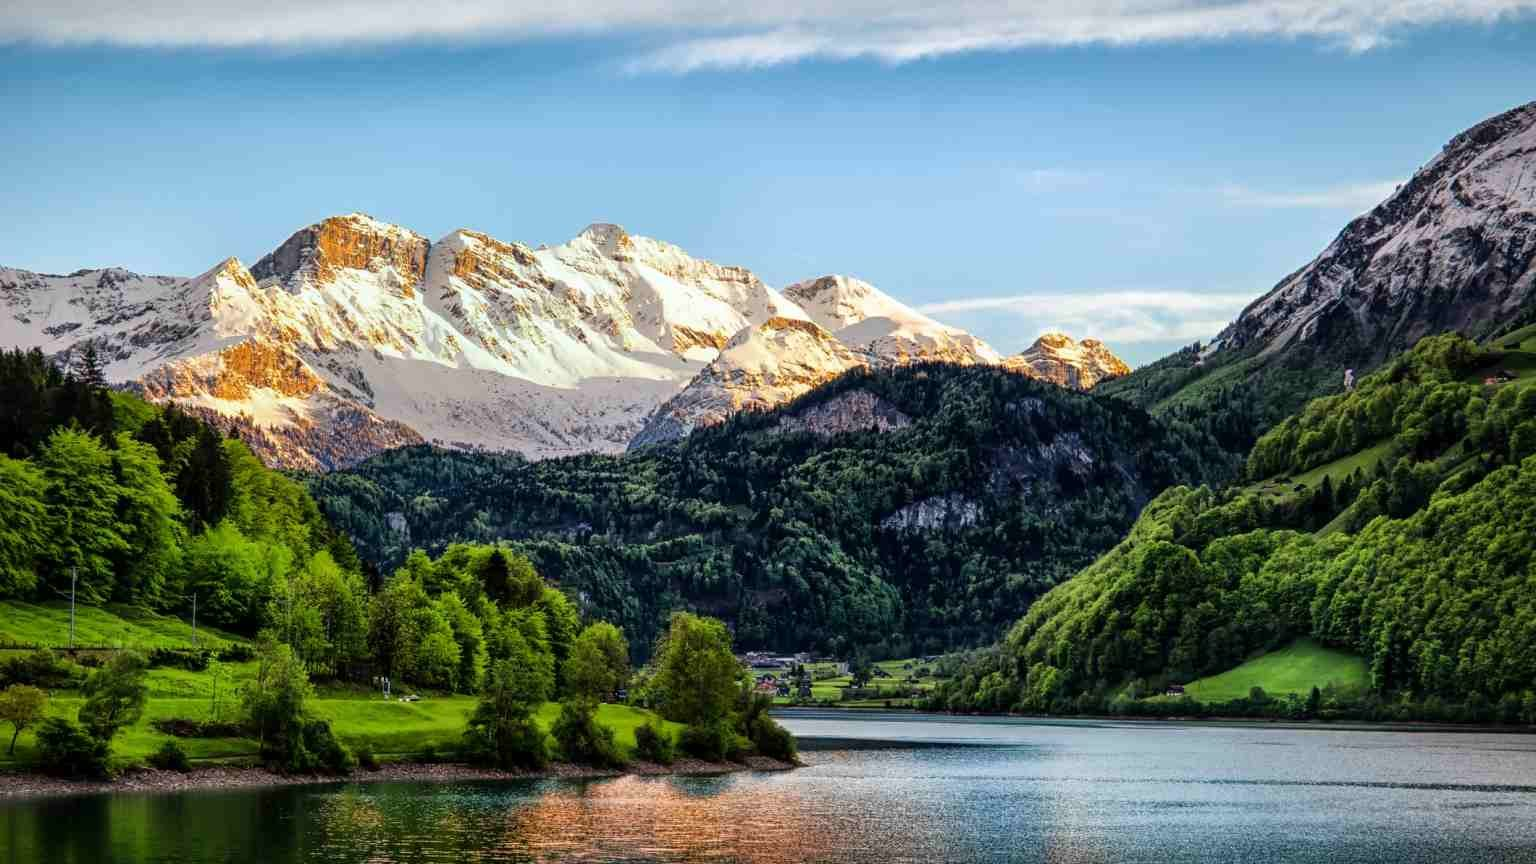 The Berner Oberland, is the higher part of the canton of Bern, Switzerland, in the southern end of the canton, and one of the canton's five administrative regions.